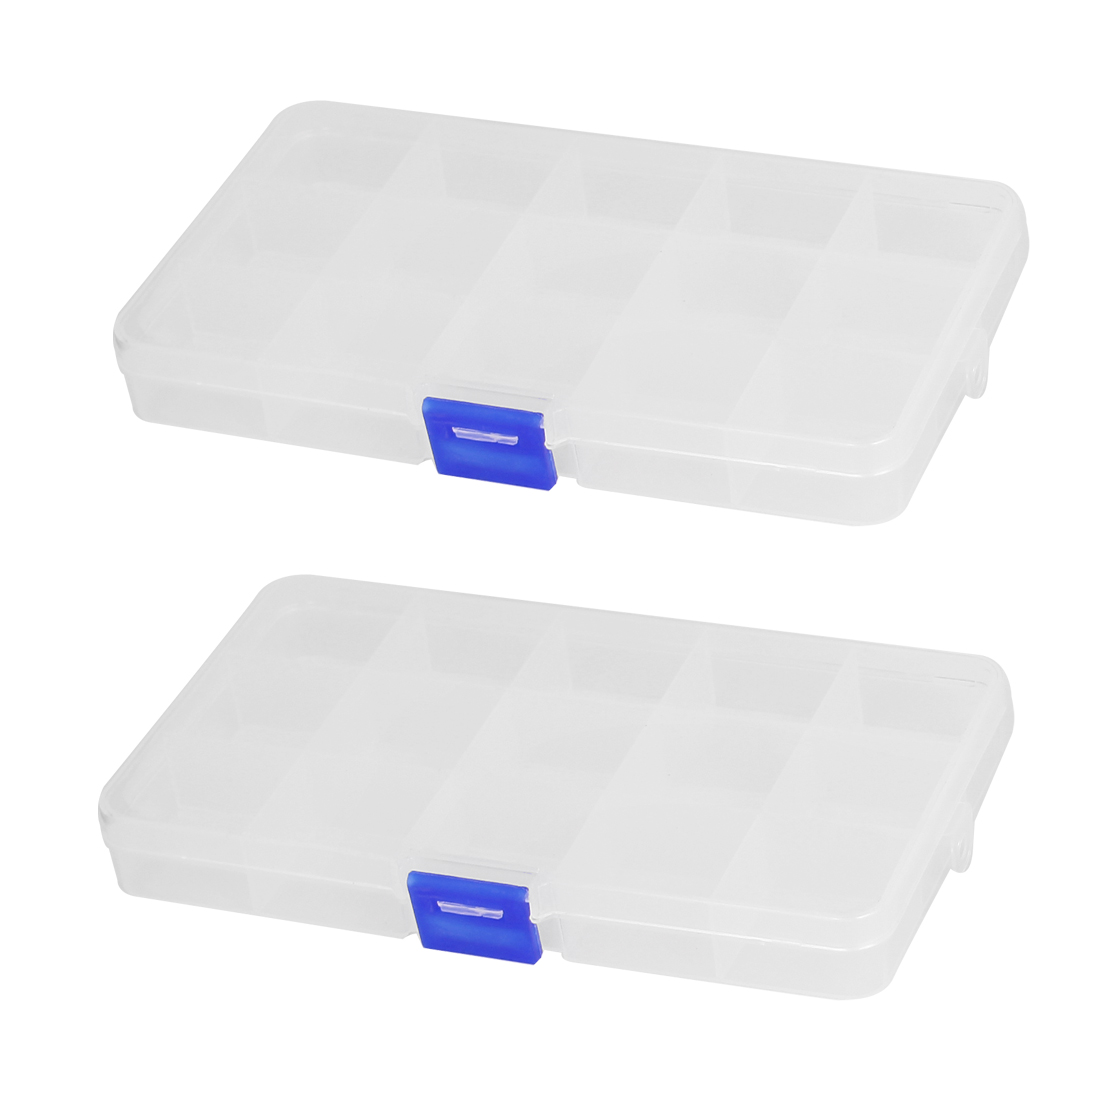 Clear Blue Plastic 15 Sections Jewelry Screws Pills Holder Storage Box 2pcs